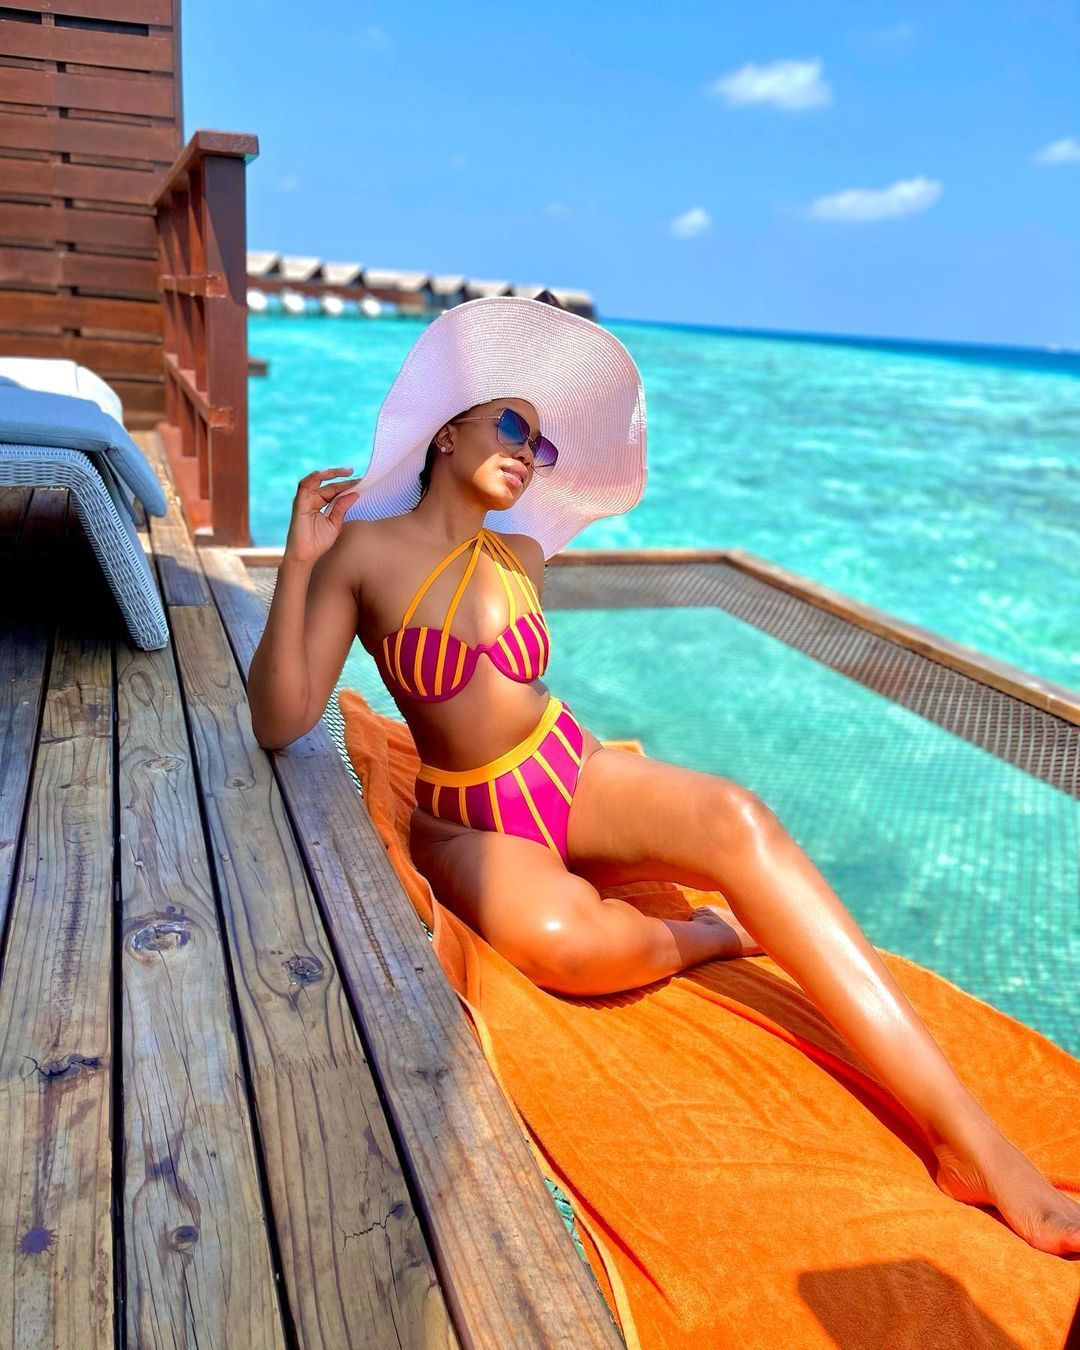 7-swimwear-trends-in-2021-to-show-off-that-summer-bawdy